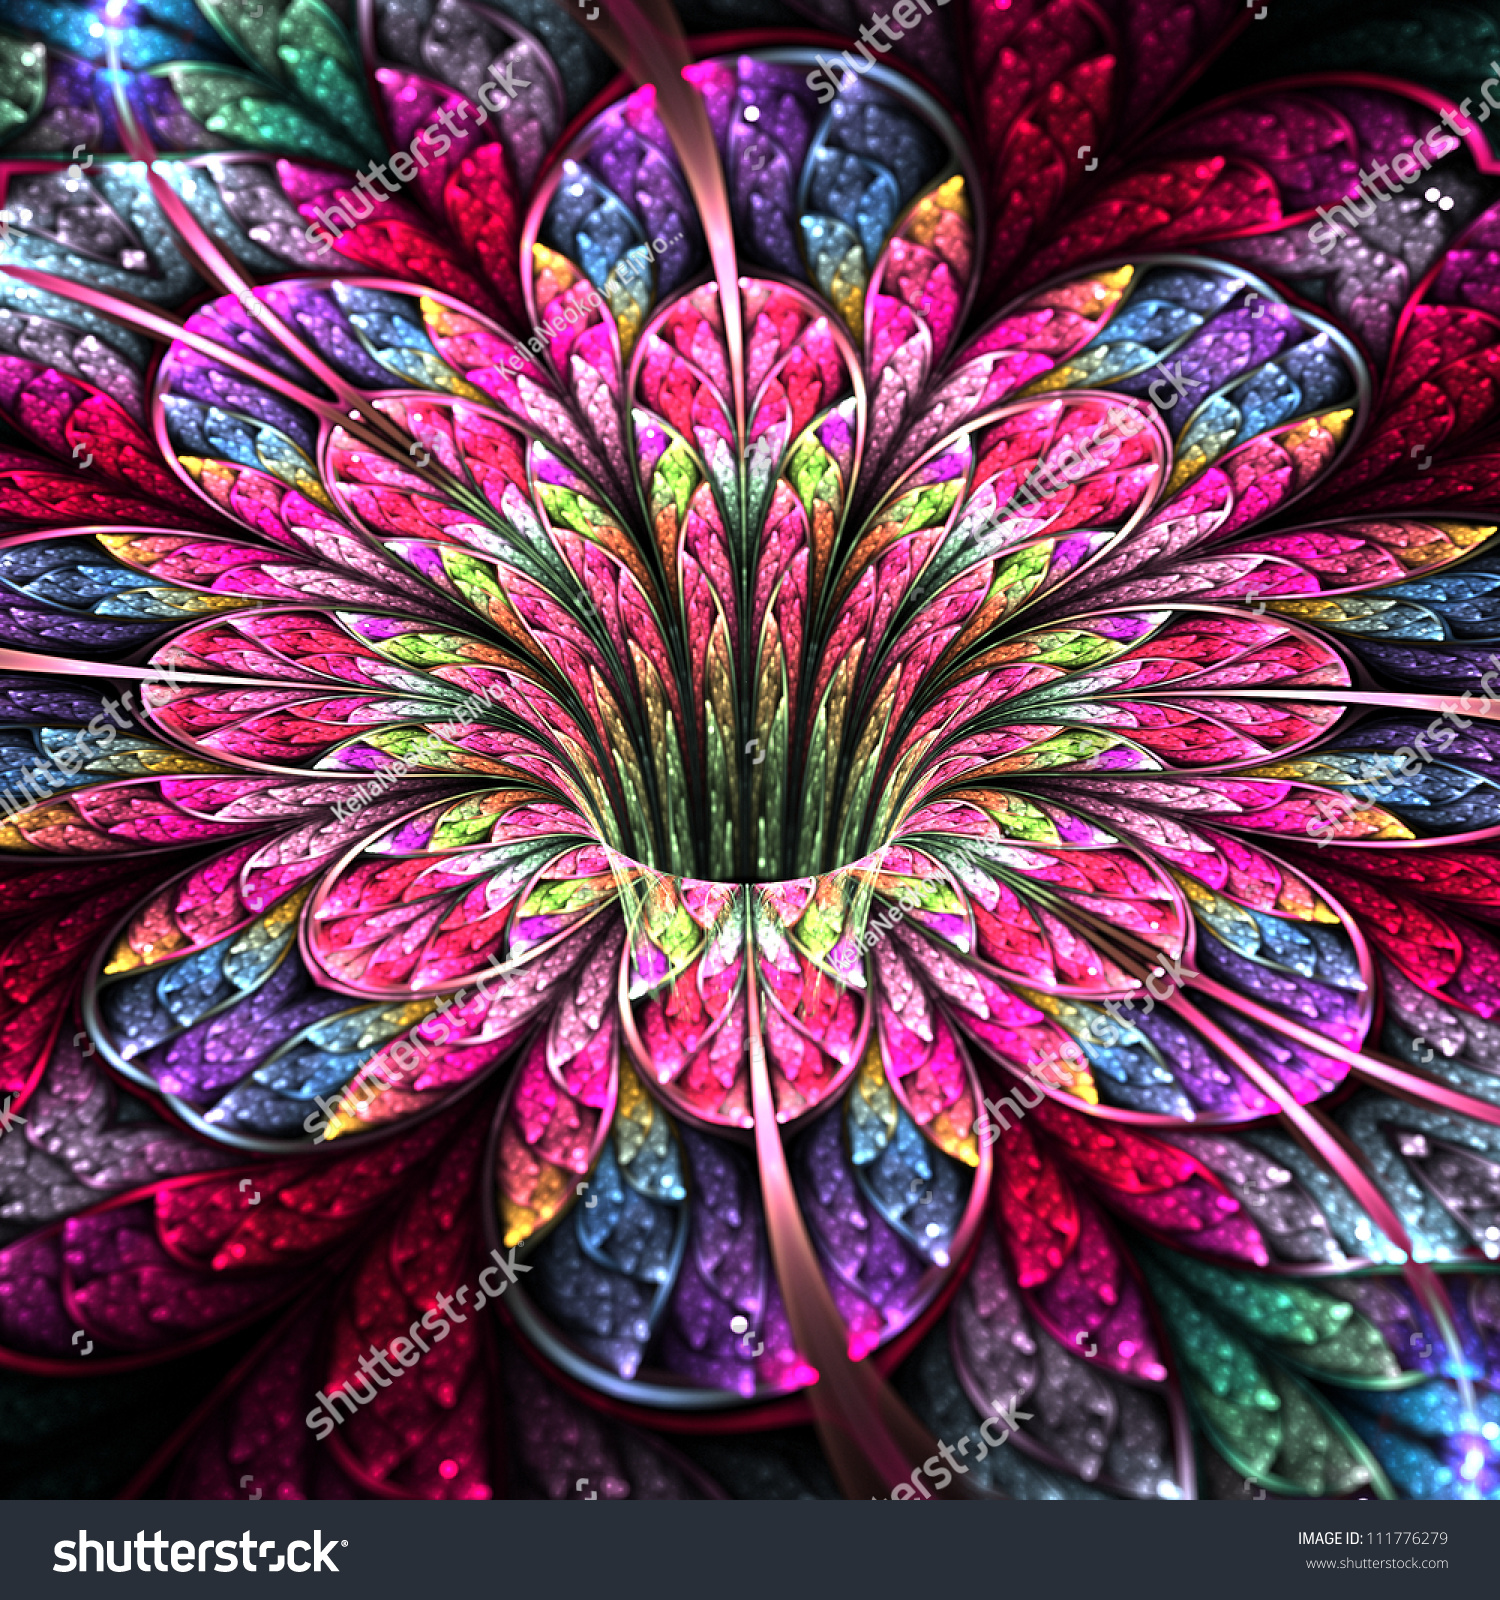 free photo start up idea - Colorful Bright Flower Modern Fractal Art Stock